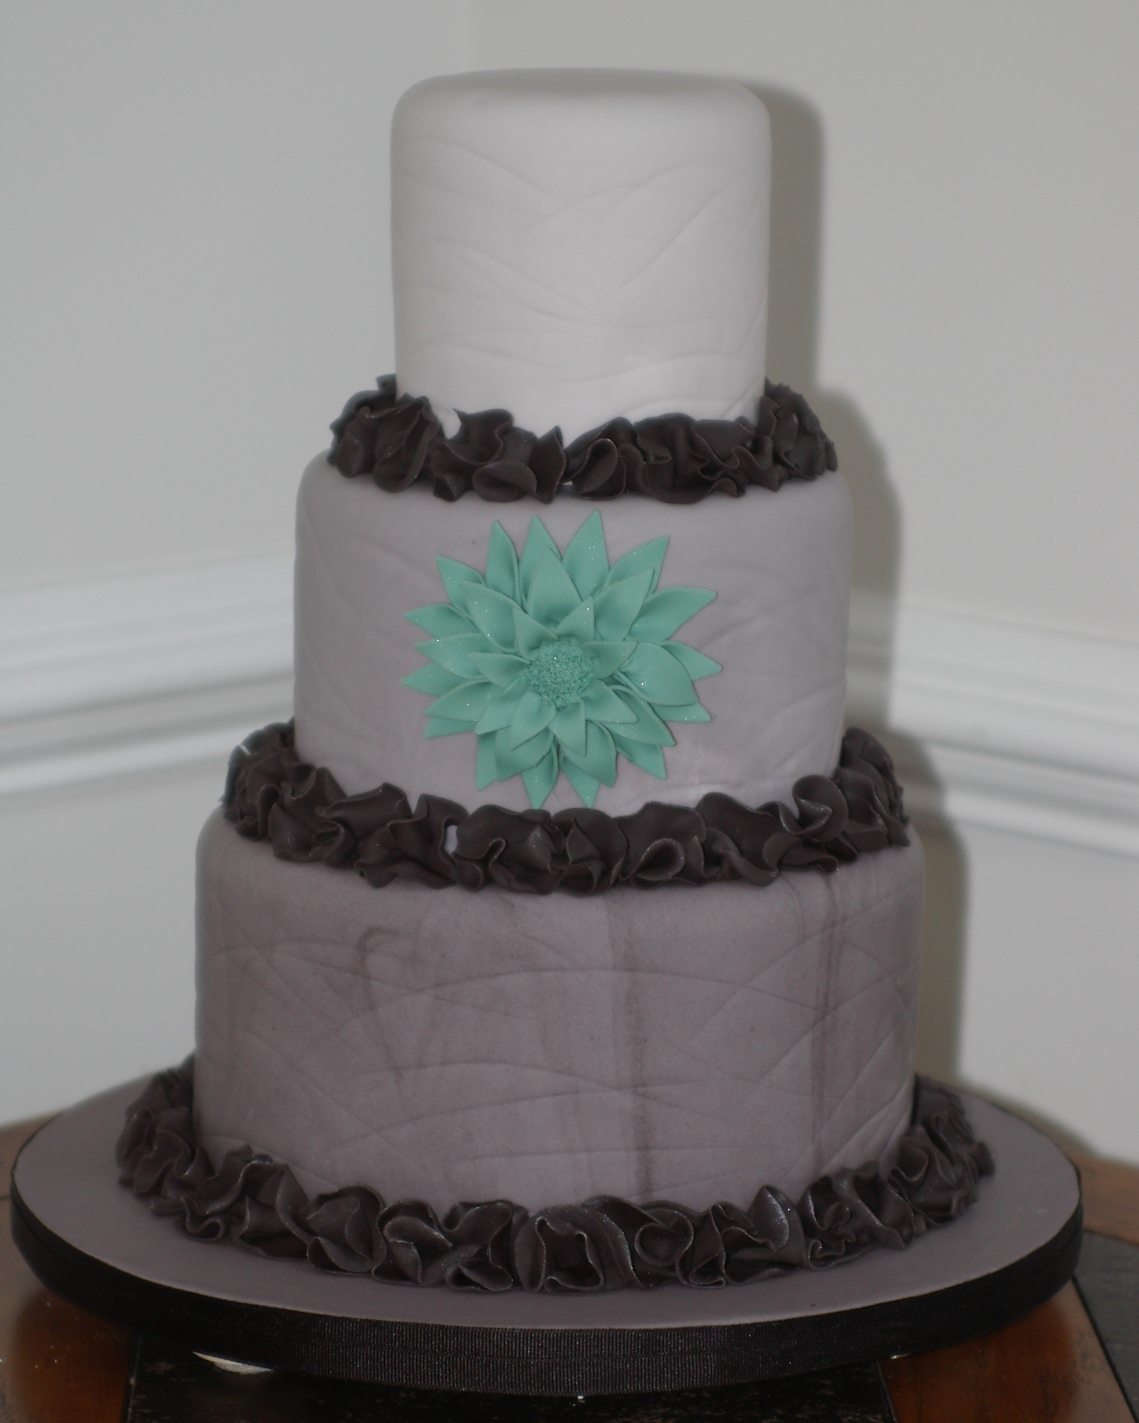 Cake Decorating Classes Near Charlotte Nc : Fat Girl Cakes and Kids: ICES Convention 2011 - Charlotte, NC